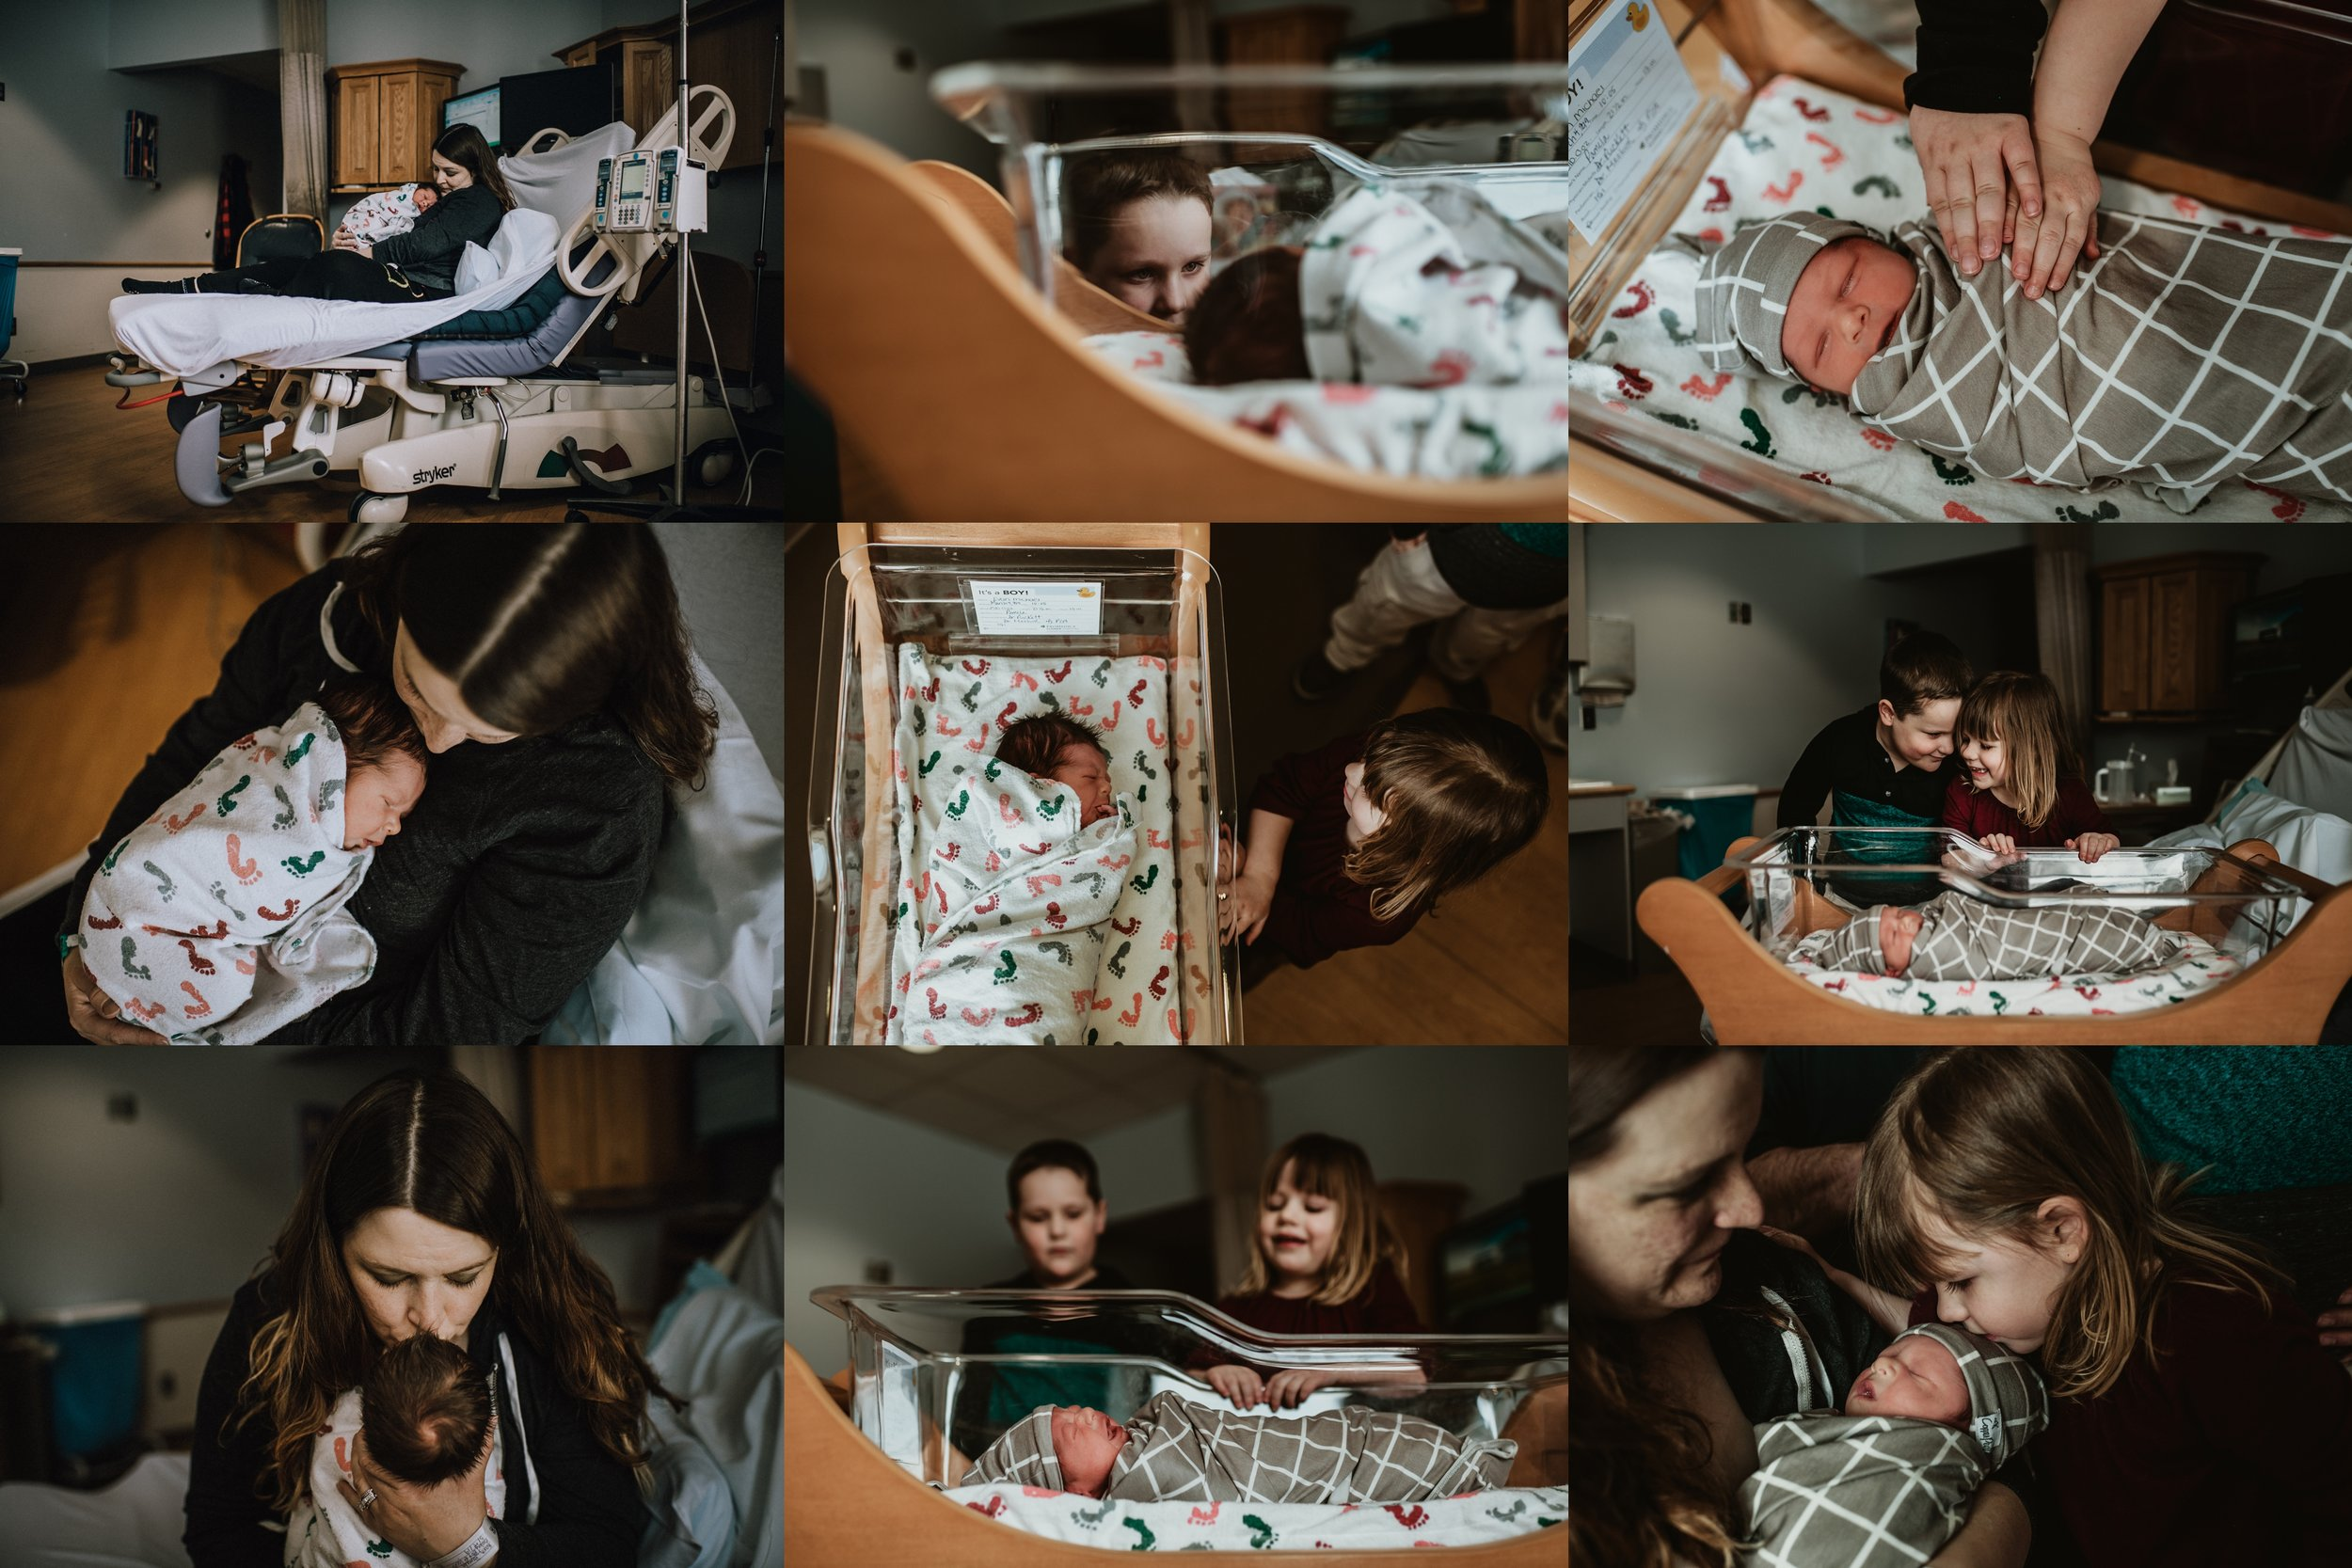 Fresh 48 Newborn Hospital Photo Session | Documentary & Lifestyle Newborn Photo | Baby Boy  | 20 Hours Old | Family Photos with Baby | Siblings Meeting Baby for First Time